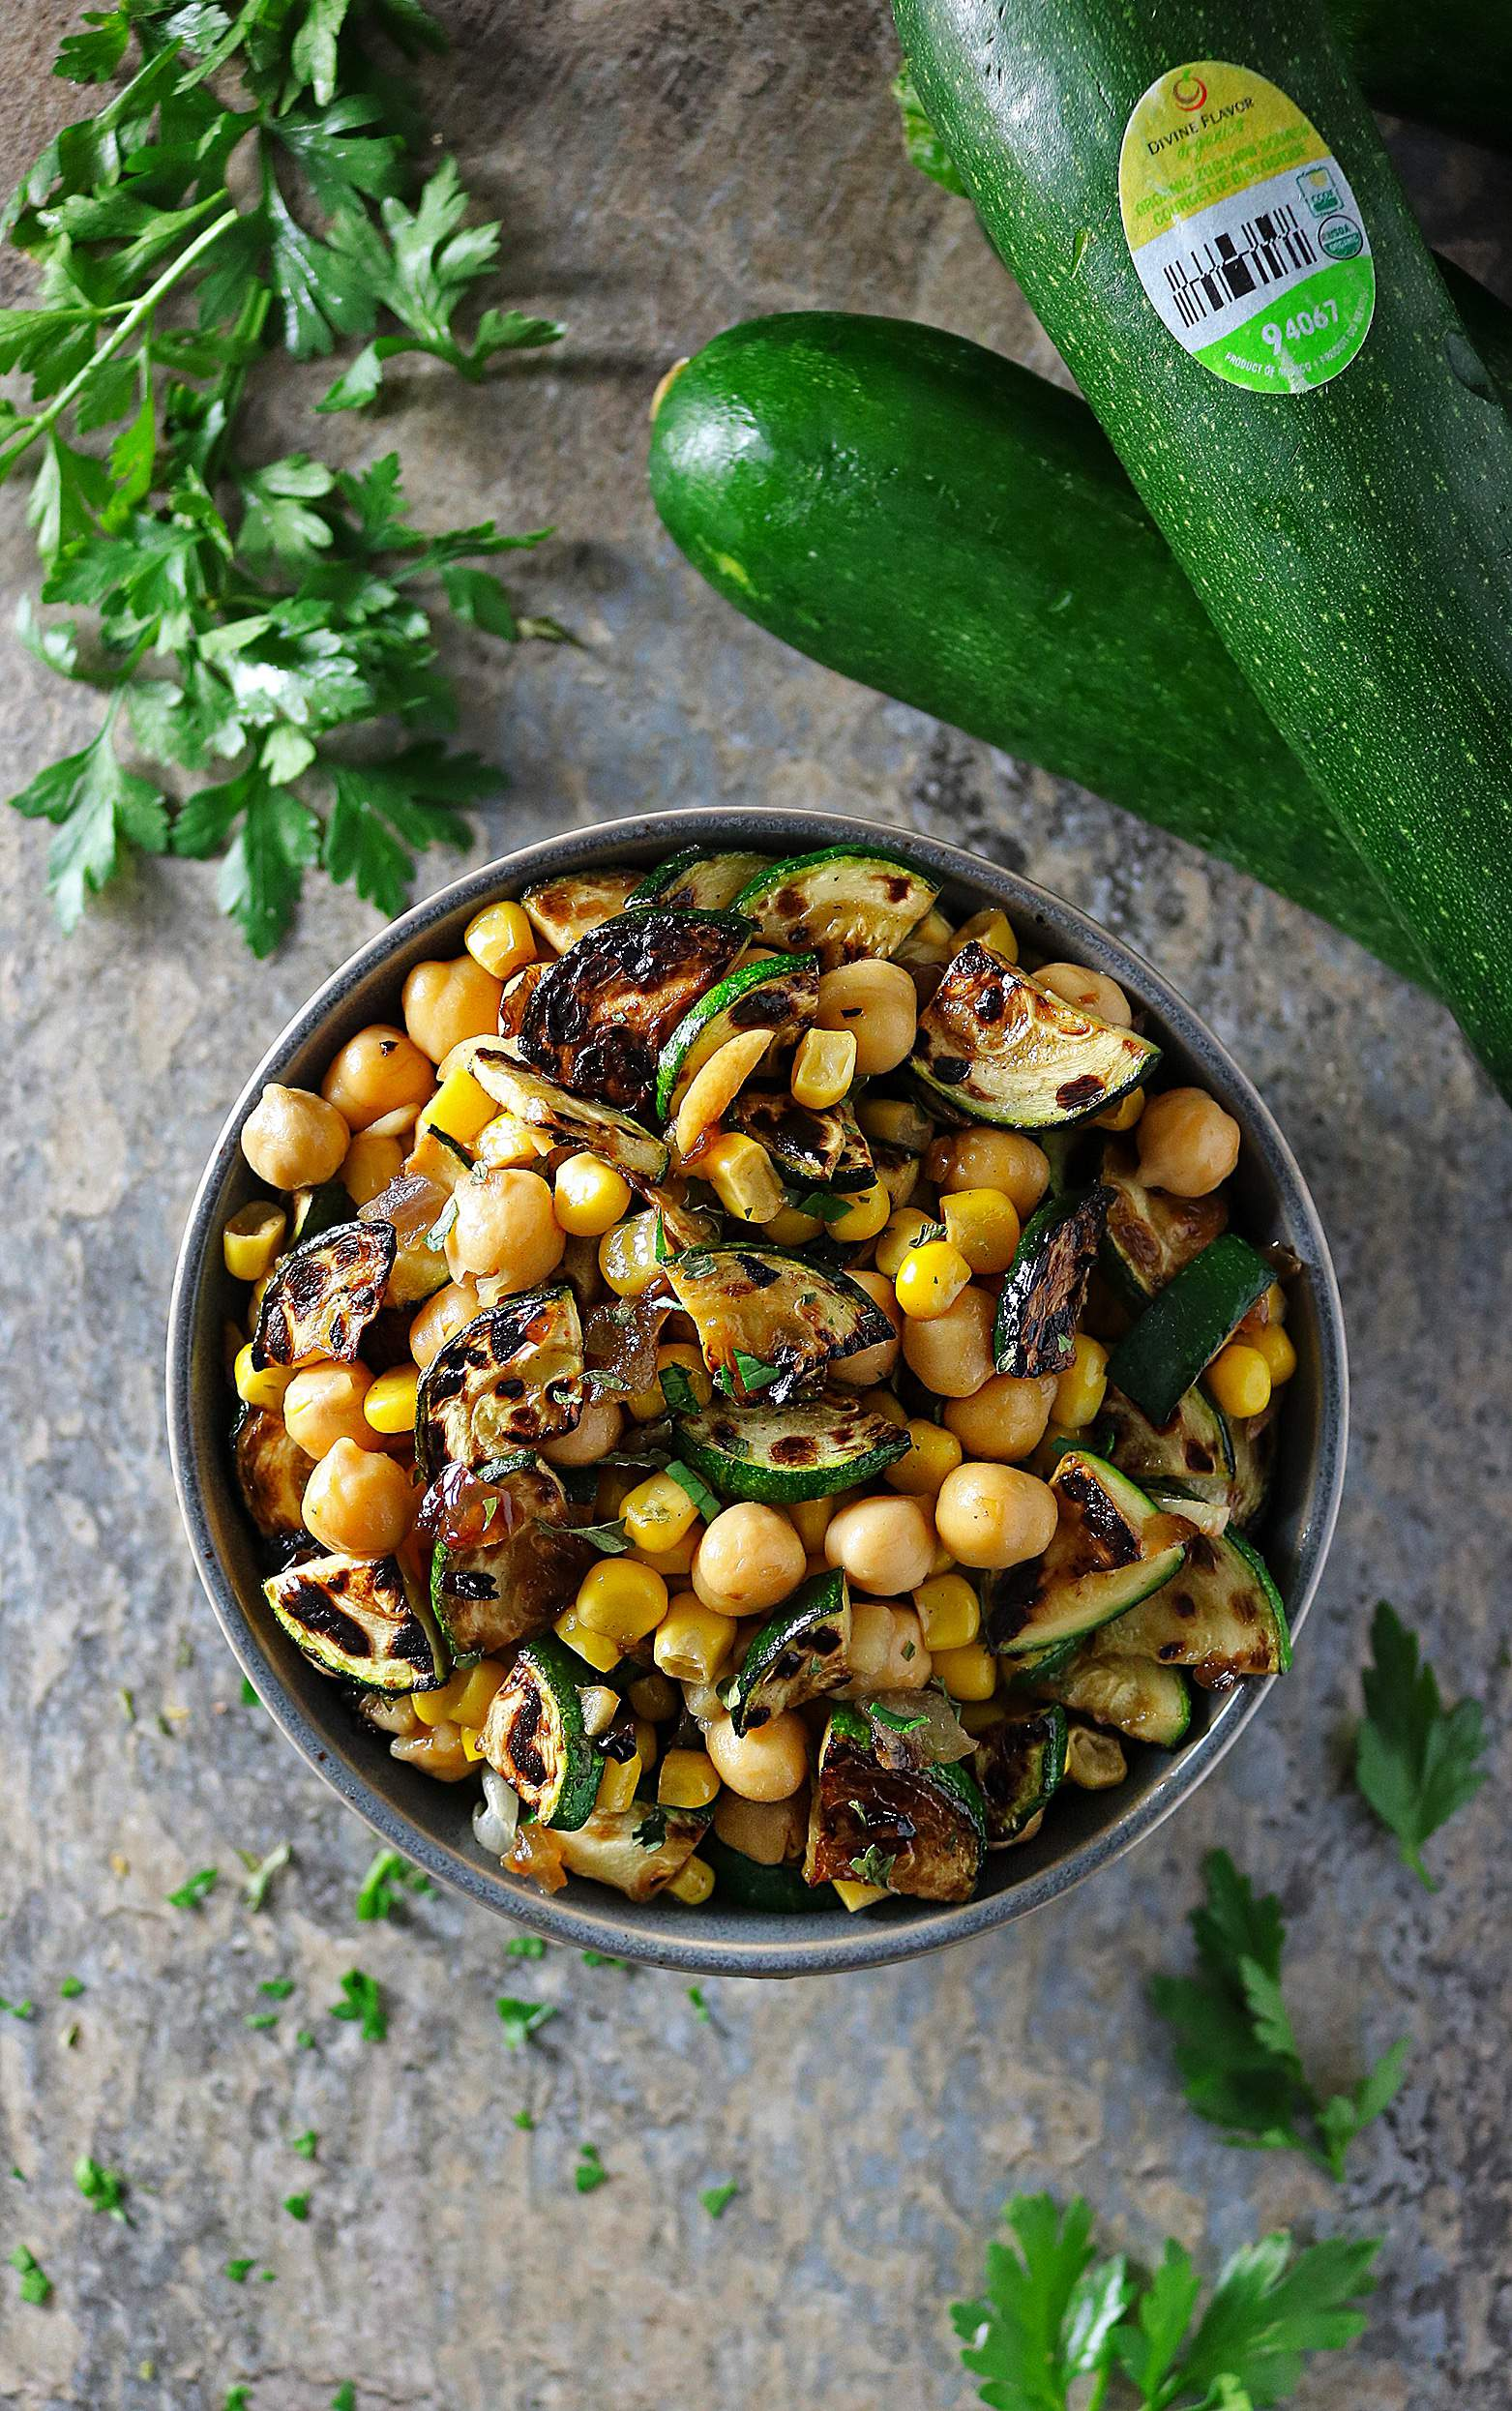 Easy 5 Ingredient Charred Zucchini And Caramelized Onion Salad